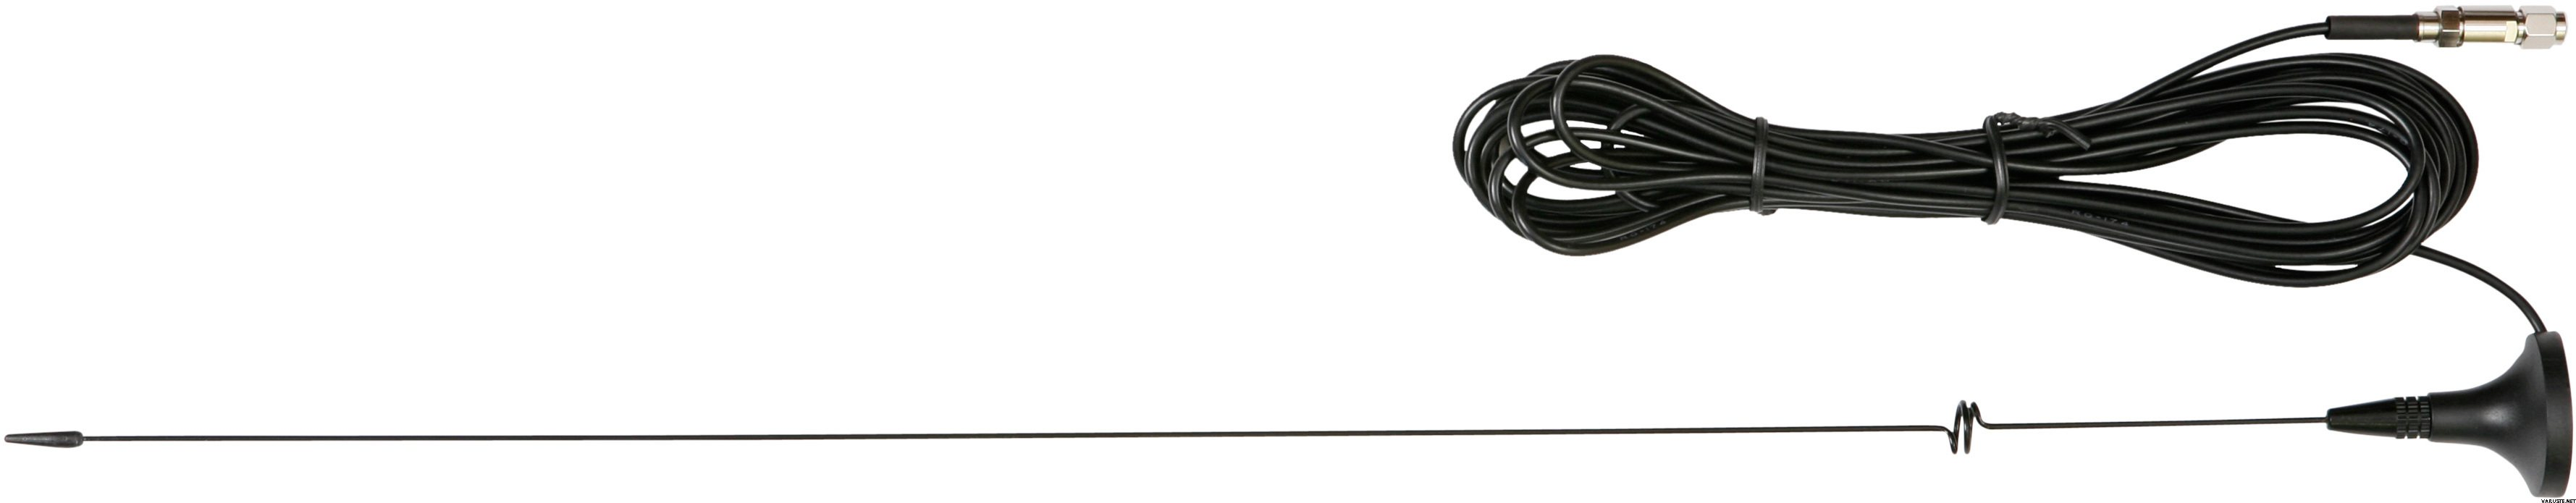 Lafayette Smart/M5 car antenna 70-155 MHz with magnet, 4m cord (3410)